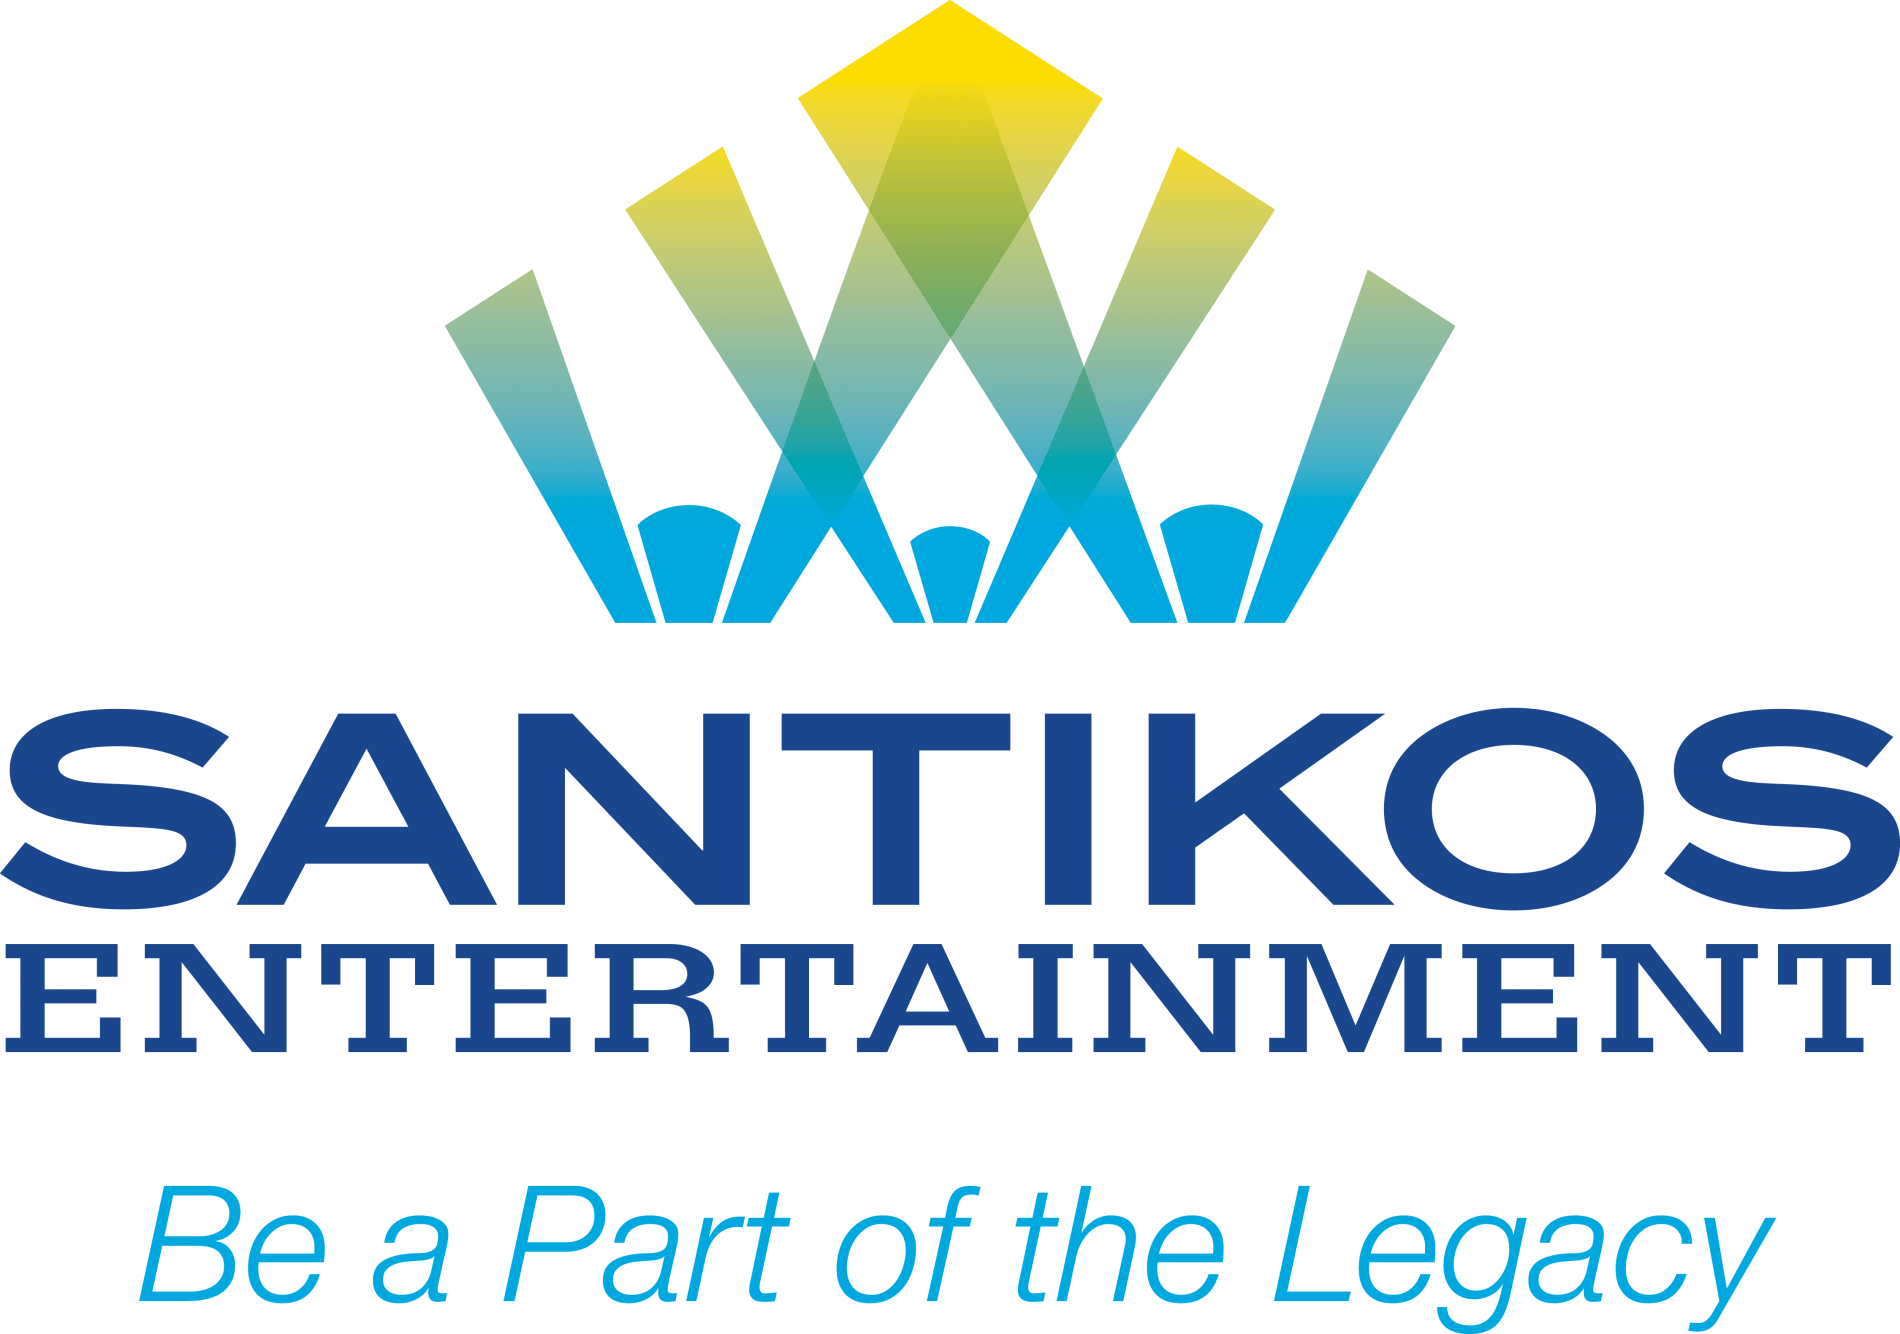 Santikos_Entertainment-w1900.png